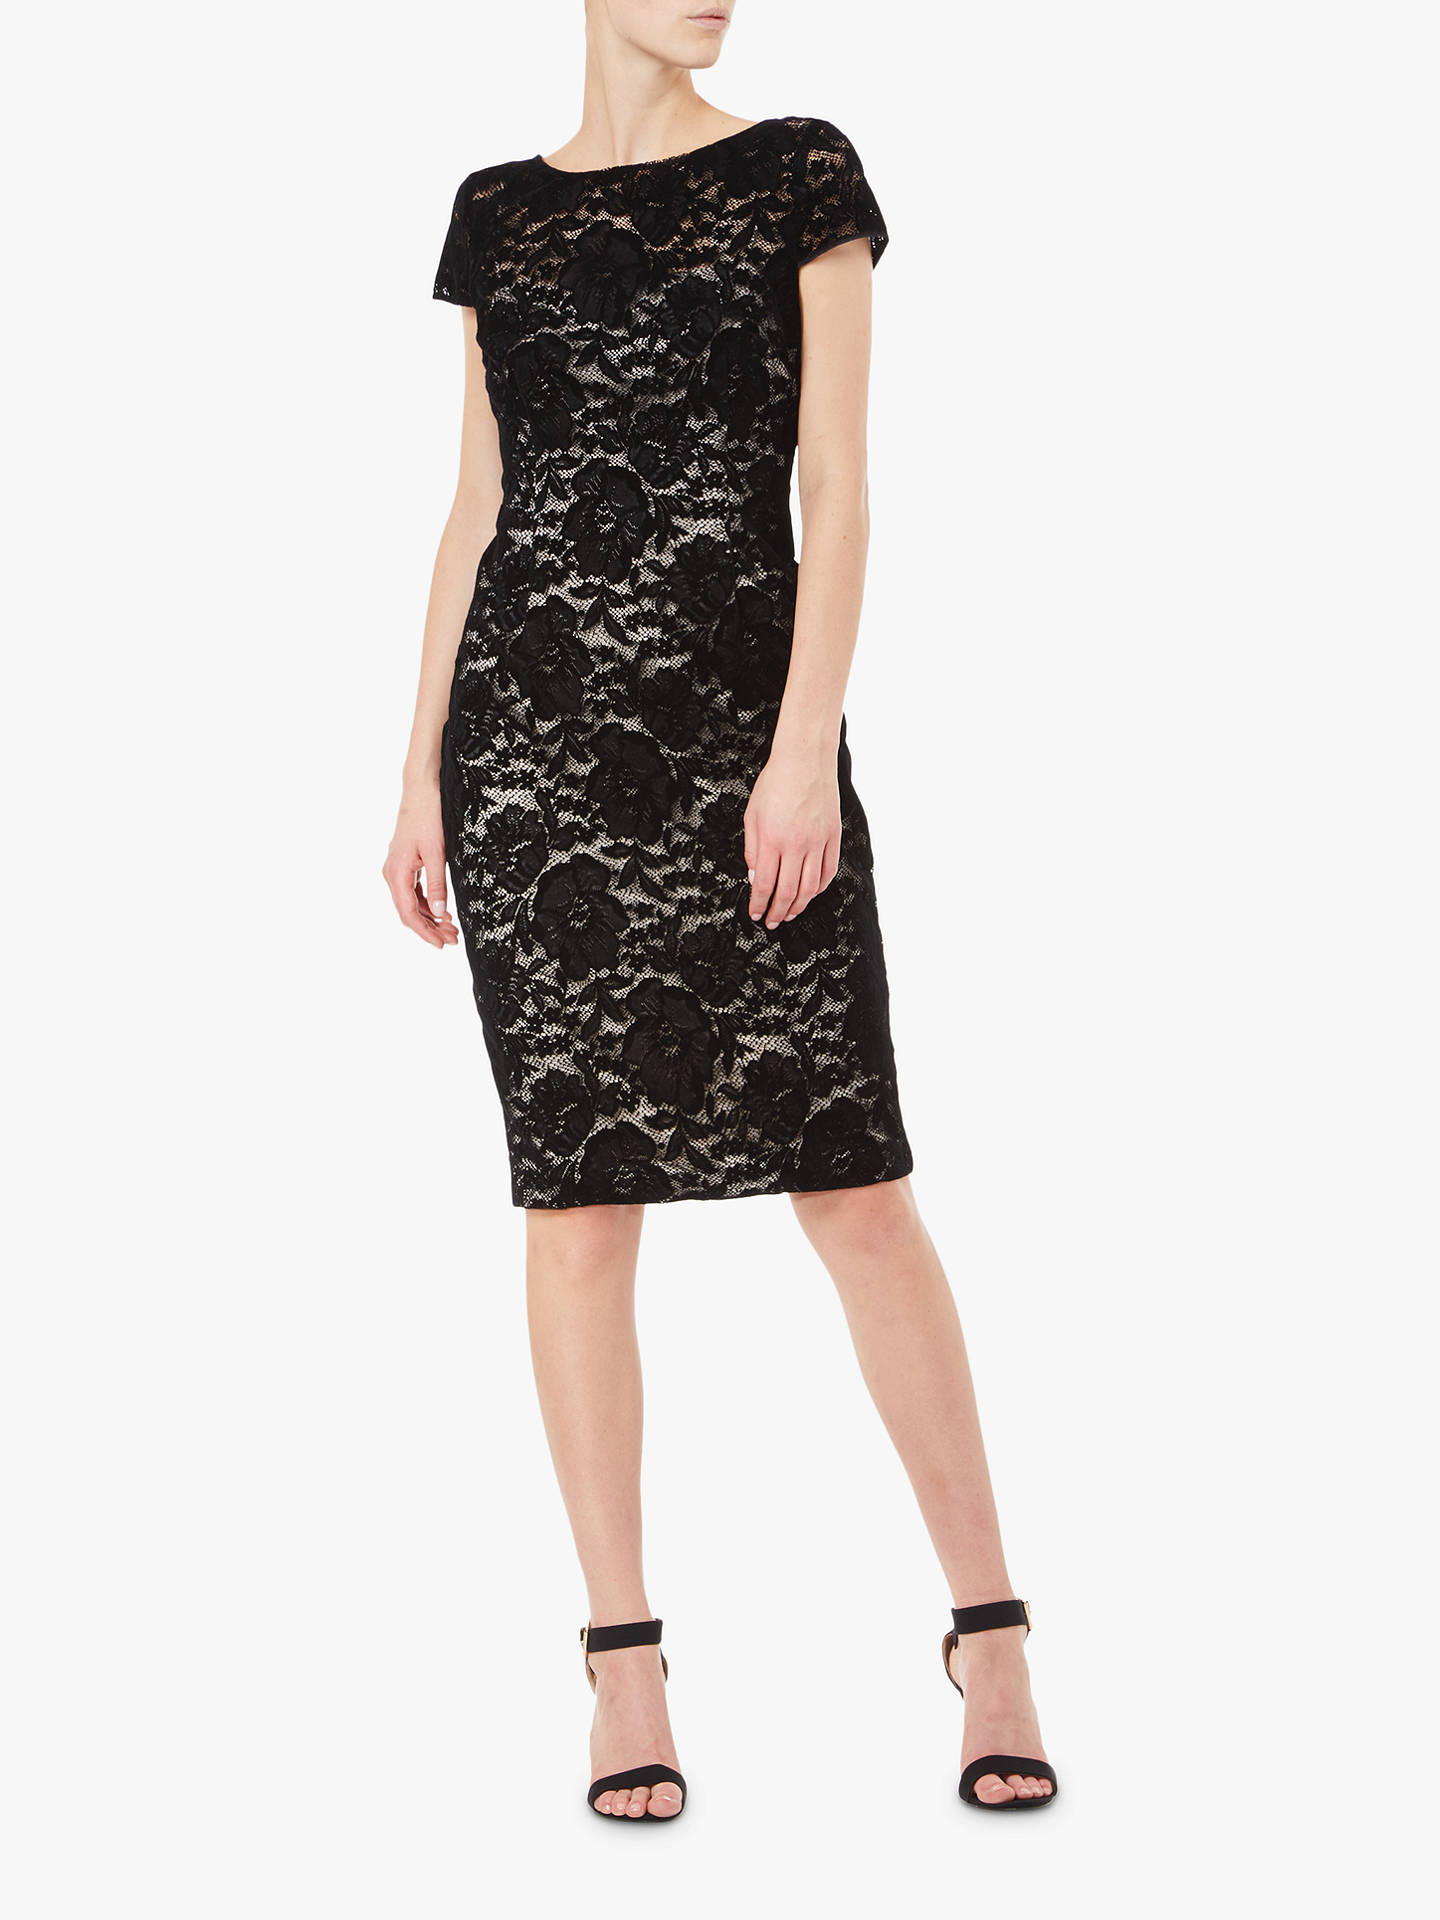 Buy Adrianna Papell Lace Velvet Dress, Black/Nude, 14 Online at johnlewis.com